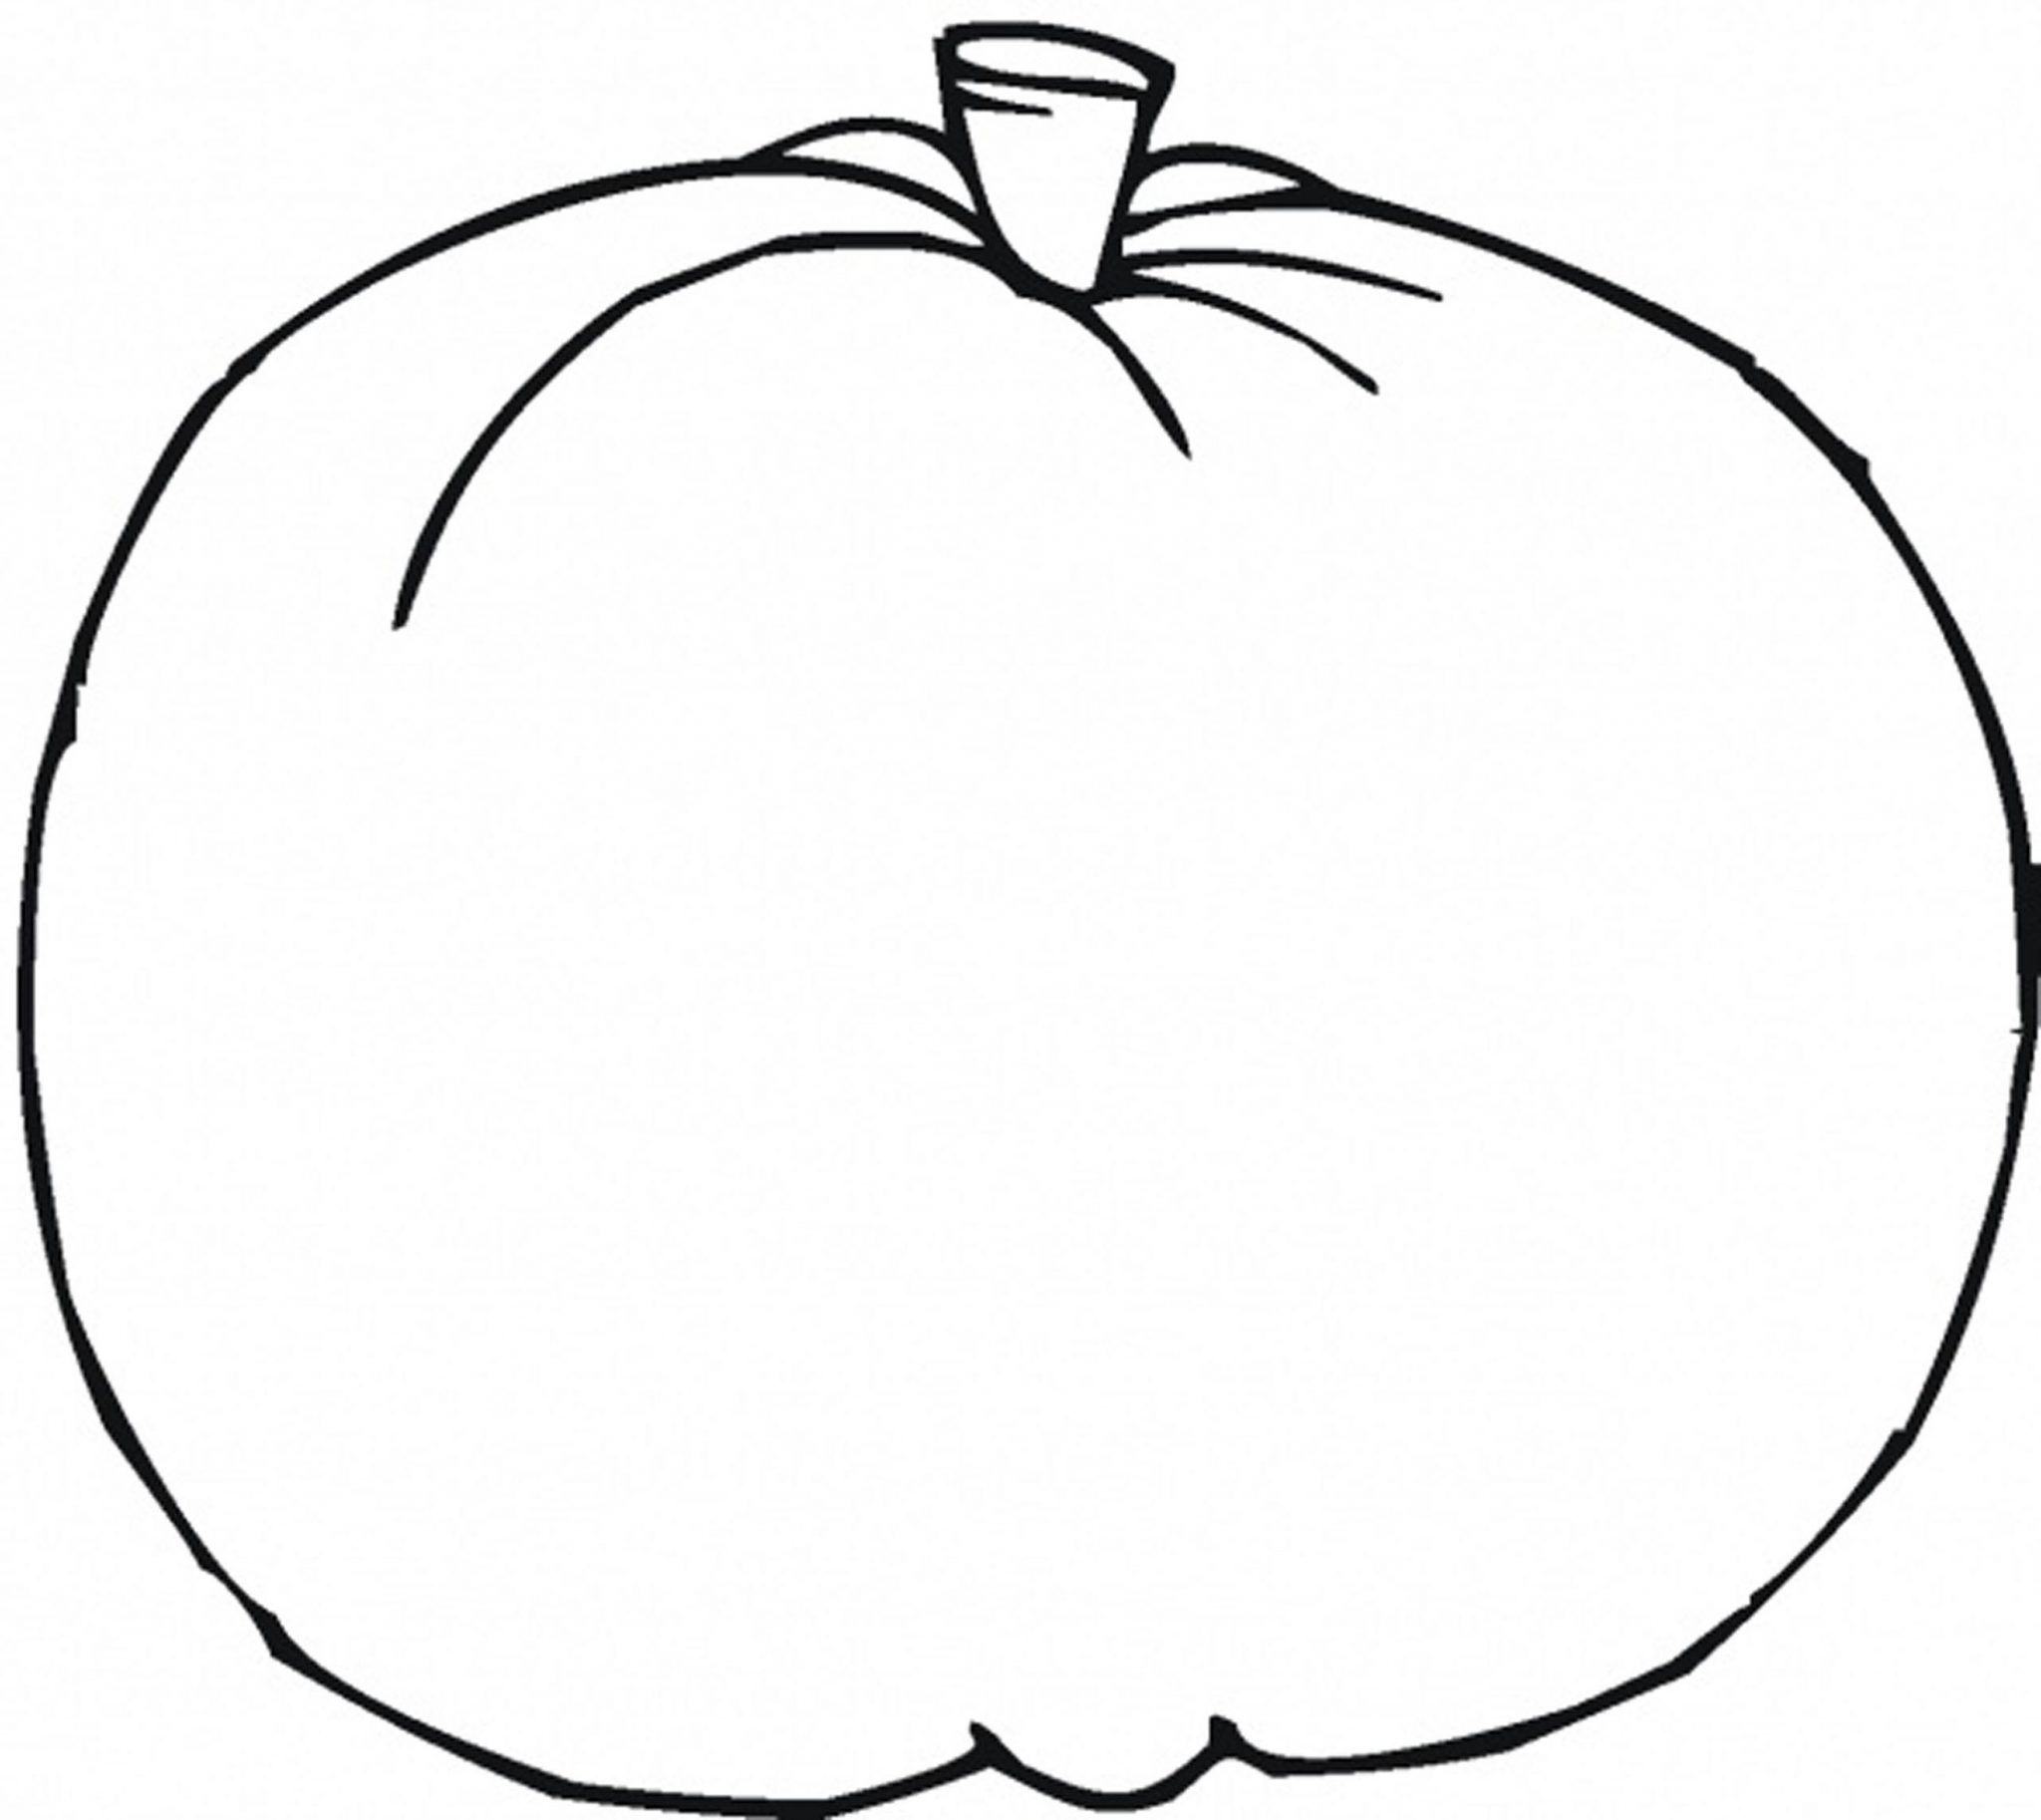 Halloween Pumpkin Coloring Pages Click The Scary Pumpkin